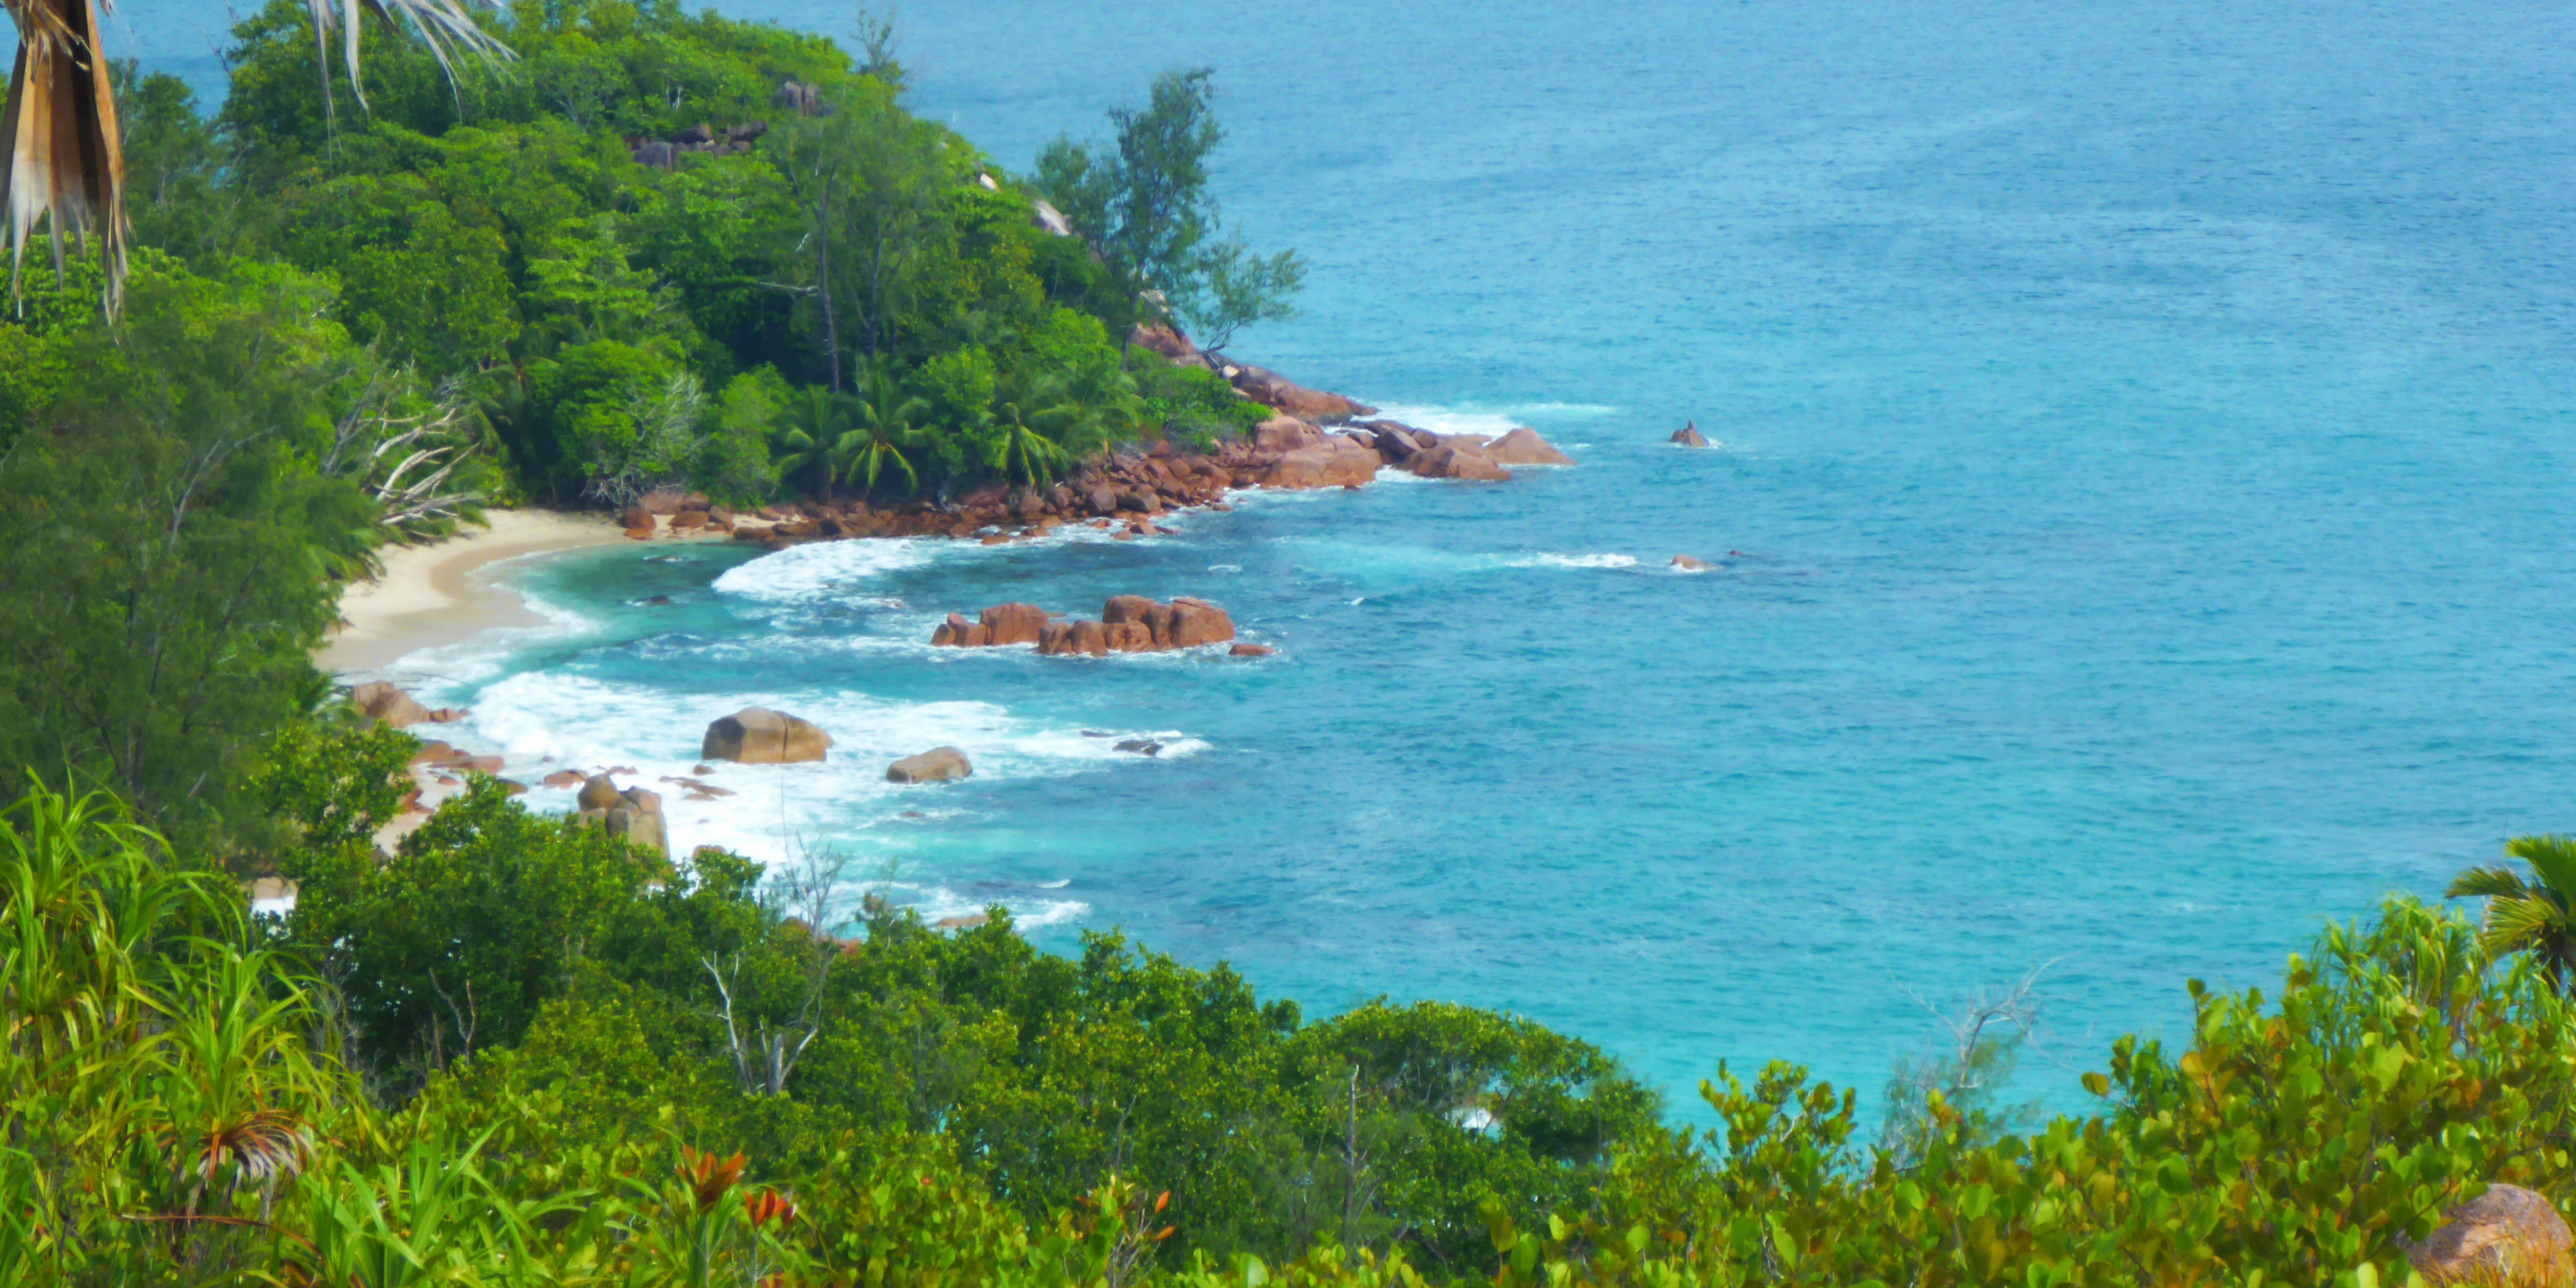 GVI participants volunteering in Seychelles will live and work on Curieuse Island.